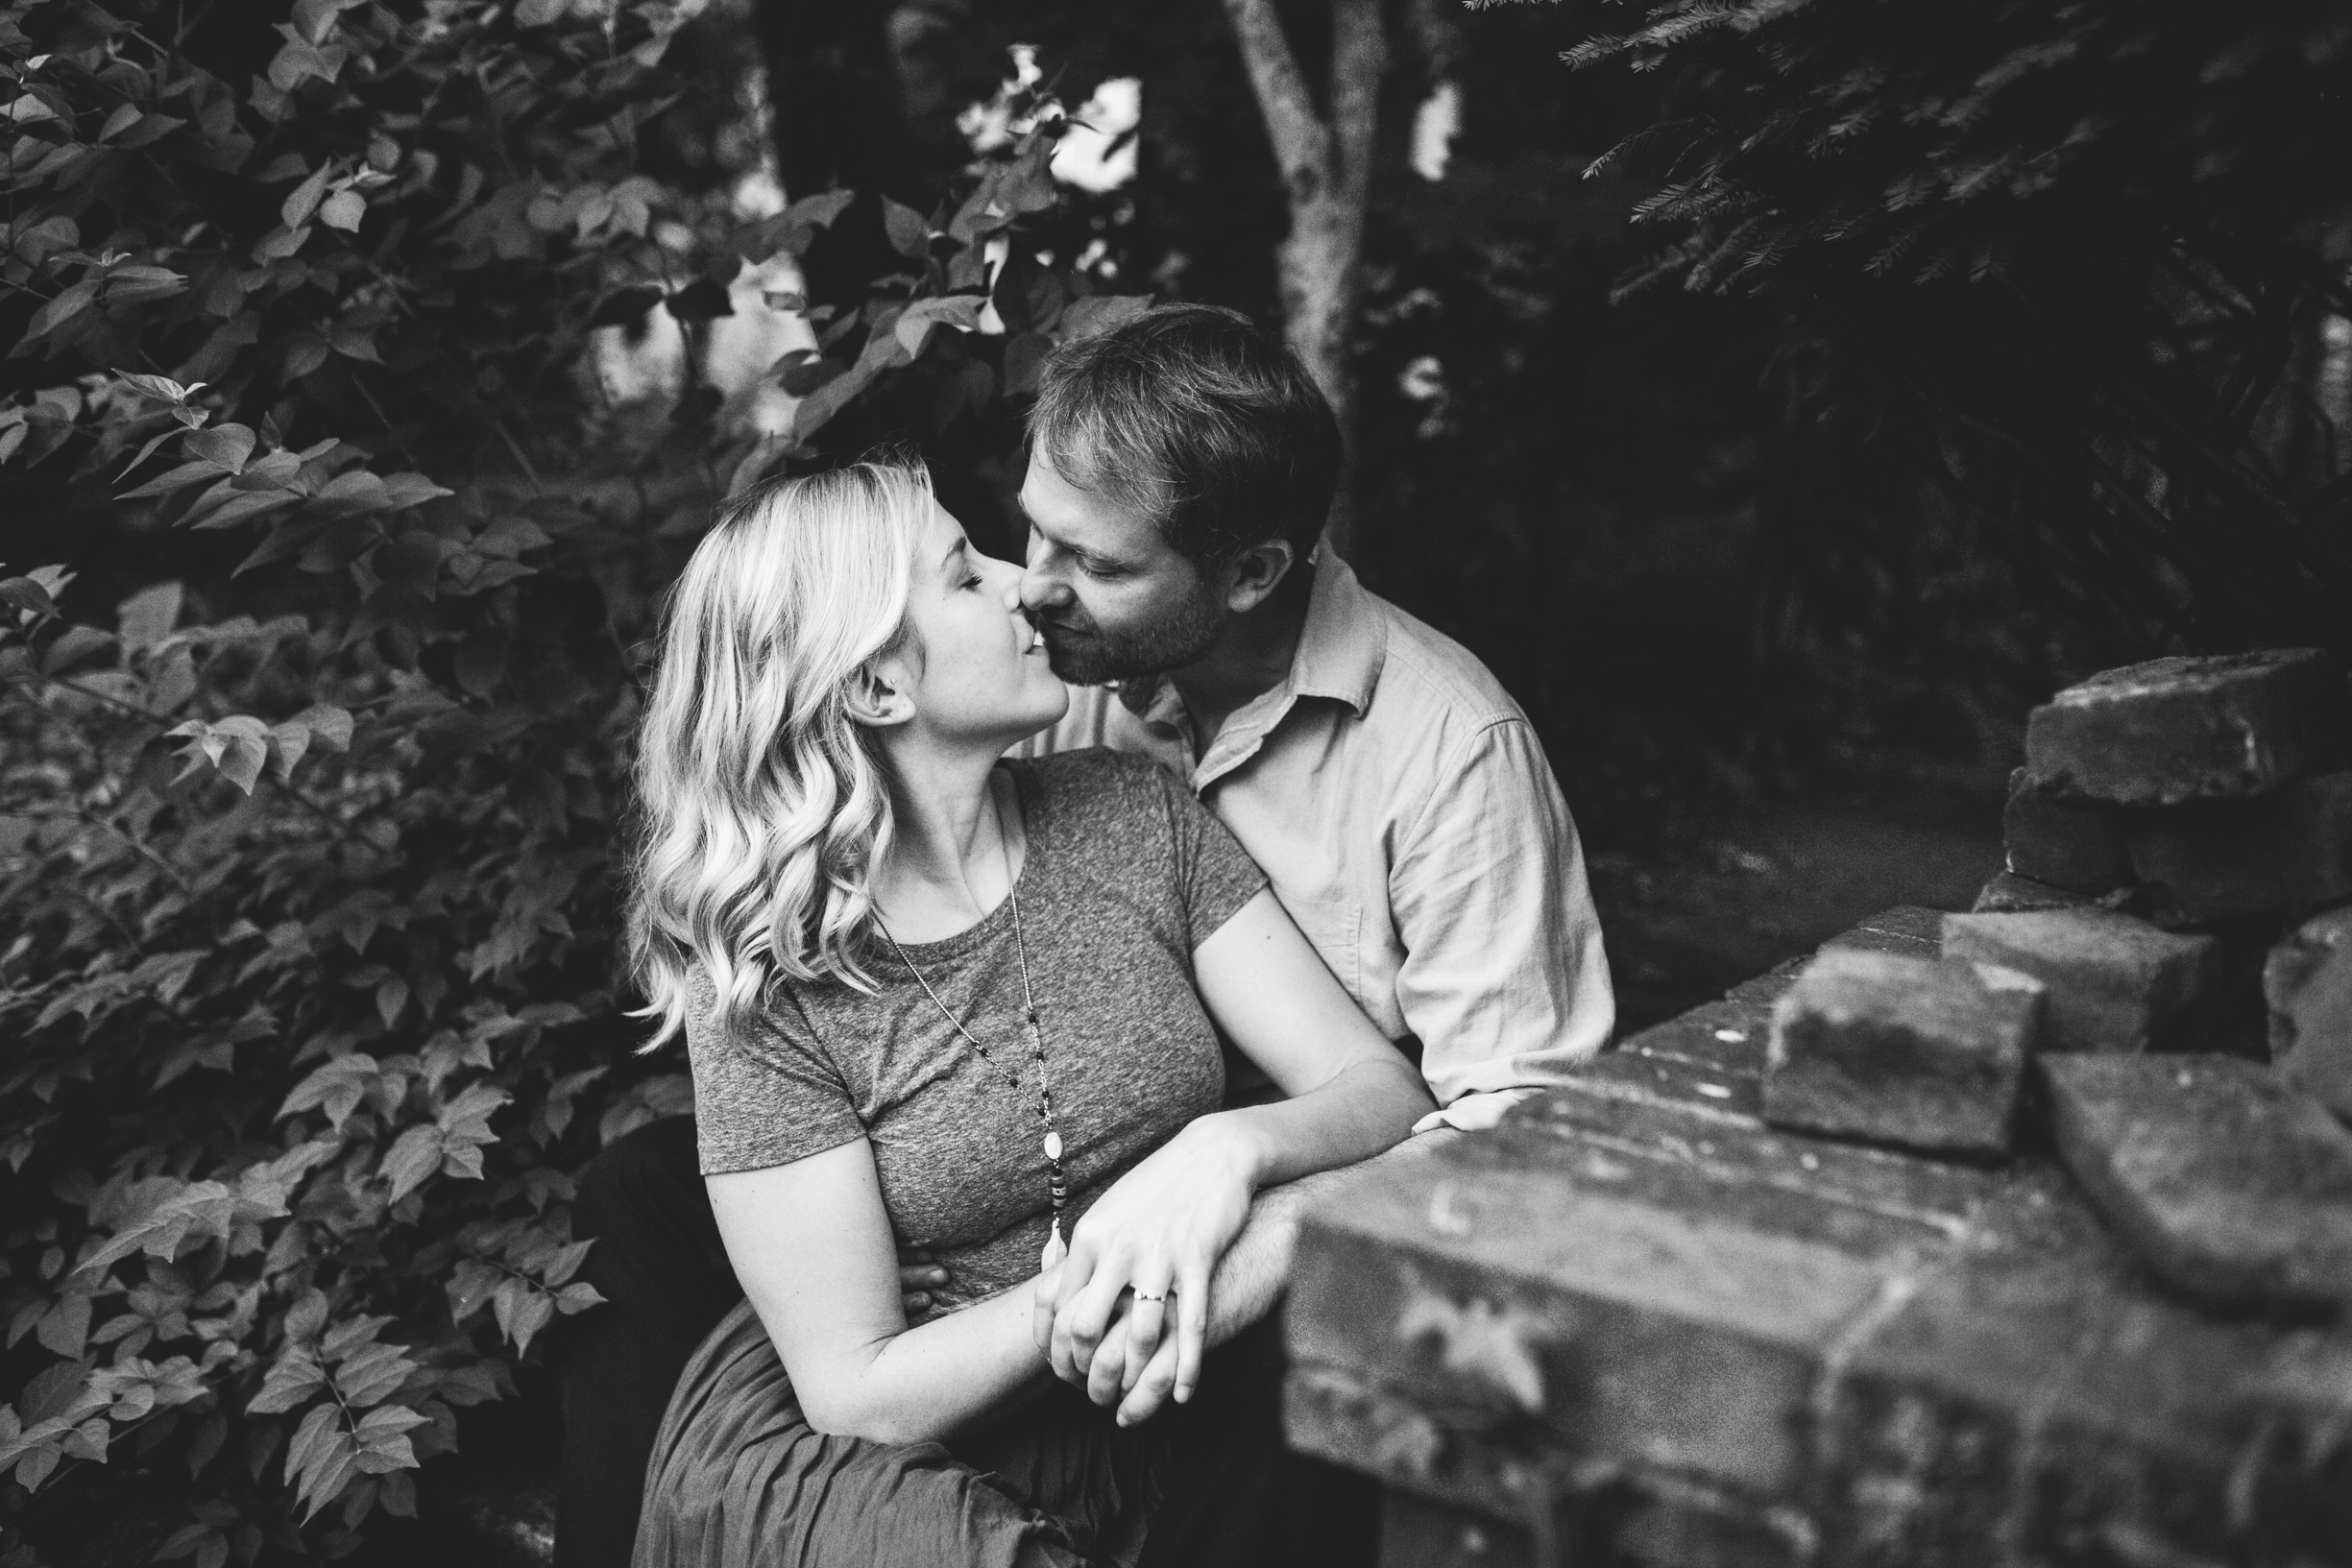 Crystal Ludwick Photo Louisville, Kentucky Wedding Photographer (35 of 57).jpg